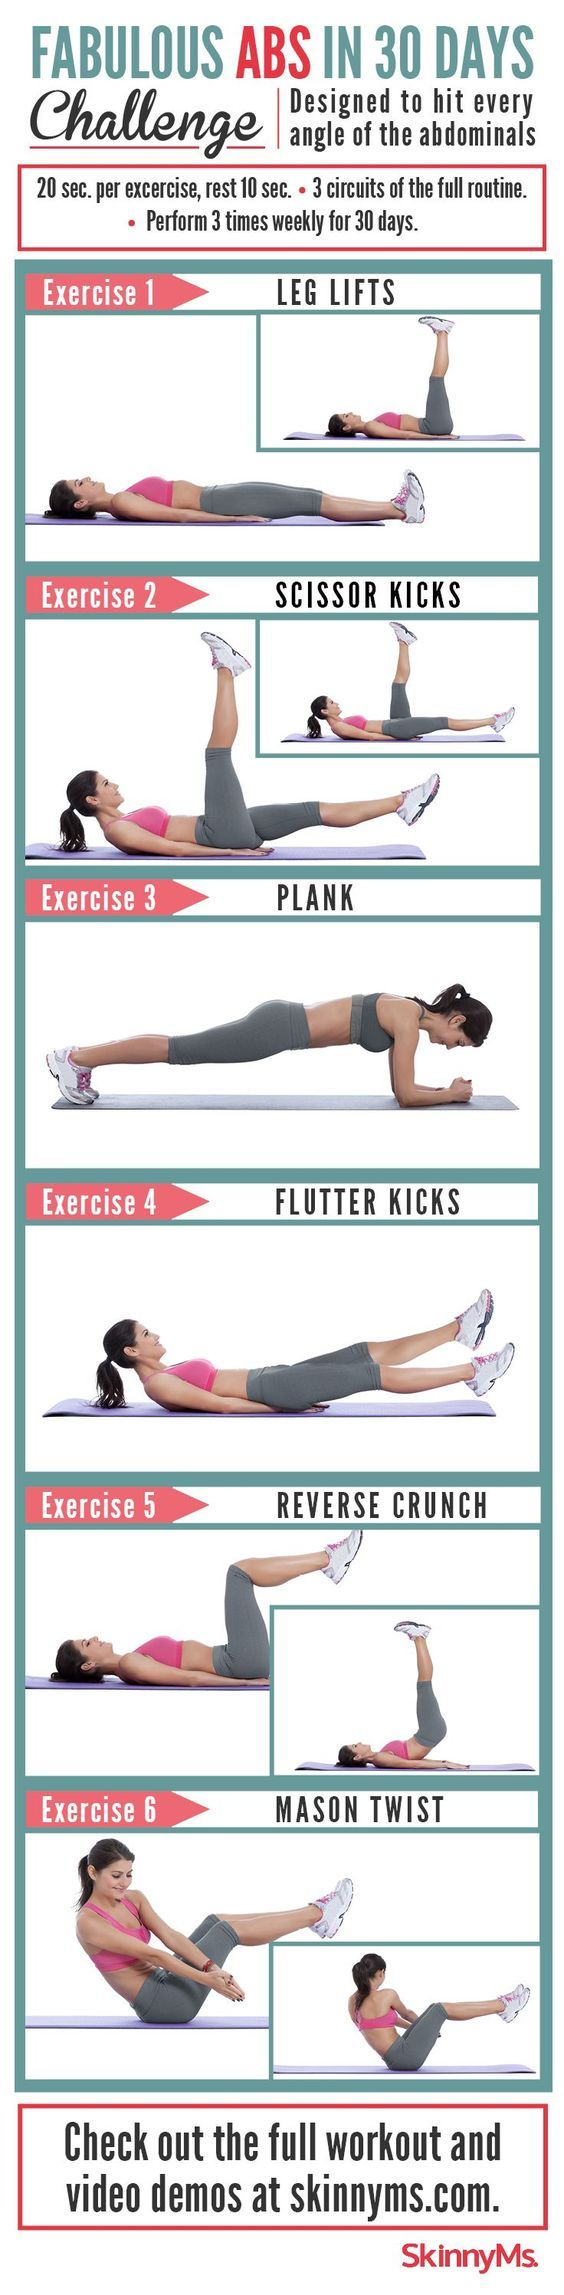 Fabulous Abs in 30 Days Challenge